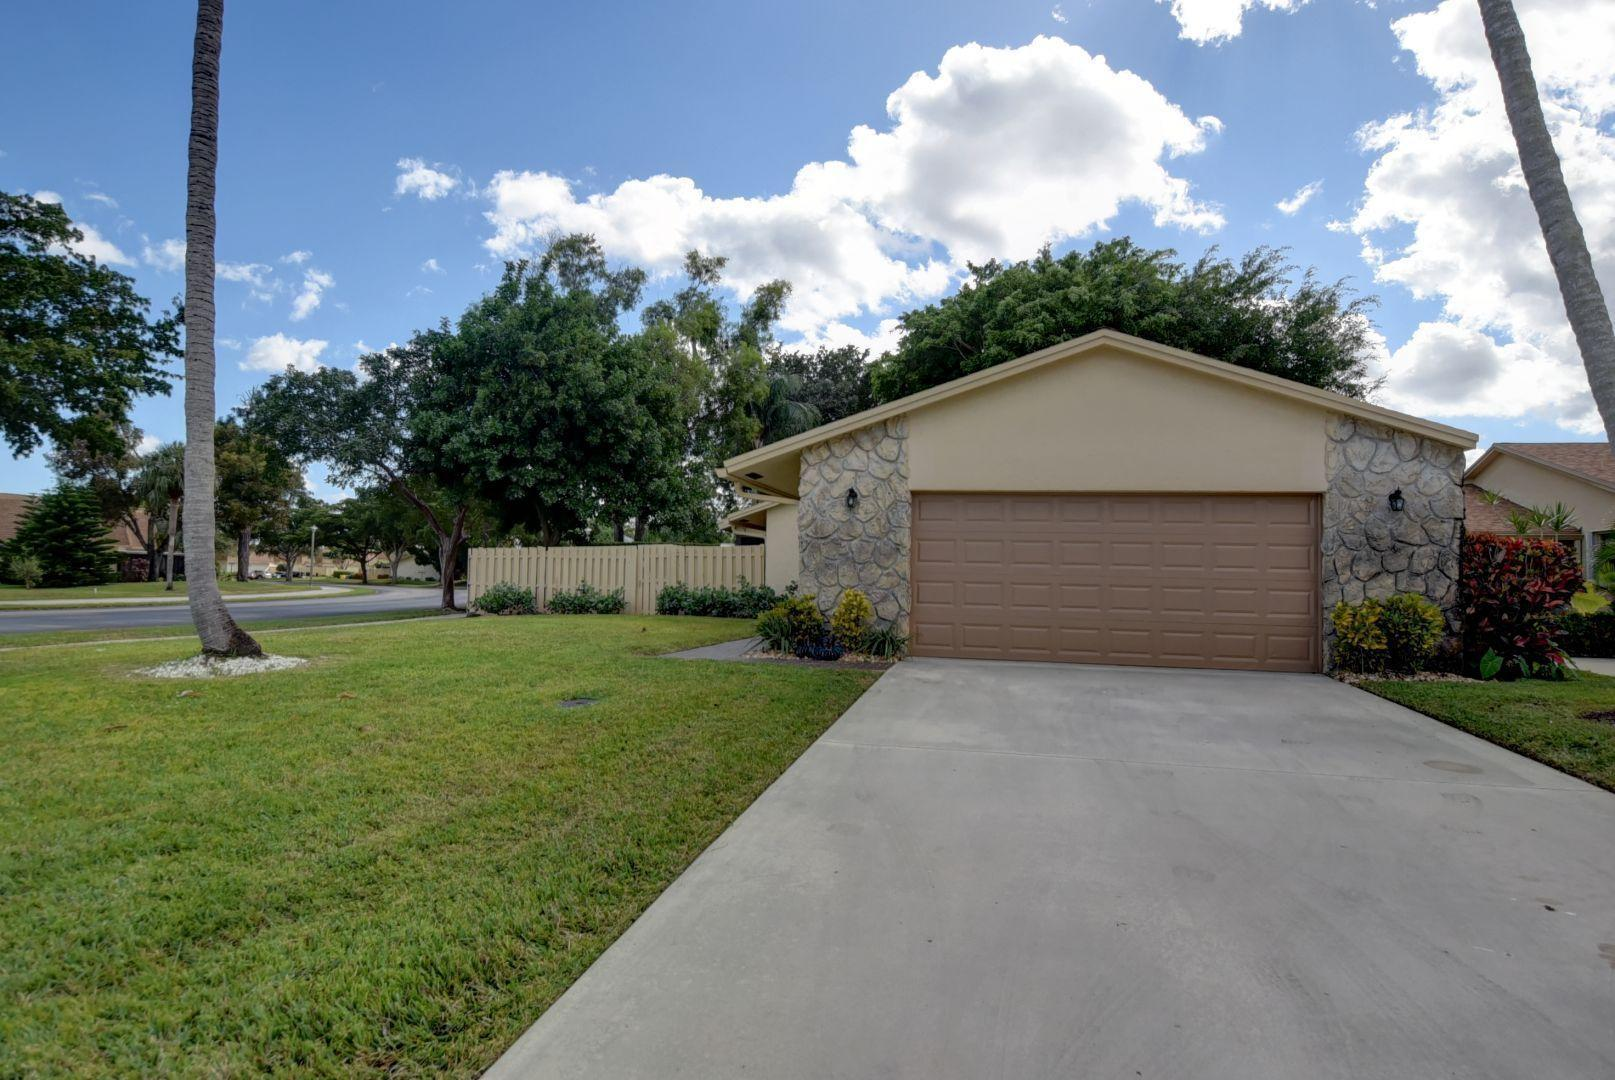 3110 9th Street Street, Delray Beach, Florida 33445, 2 Bedrooms Bedrooms, ,2 BathroomsBathrooms,Residential,For Sale,9th Street,RX-10570956